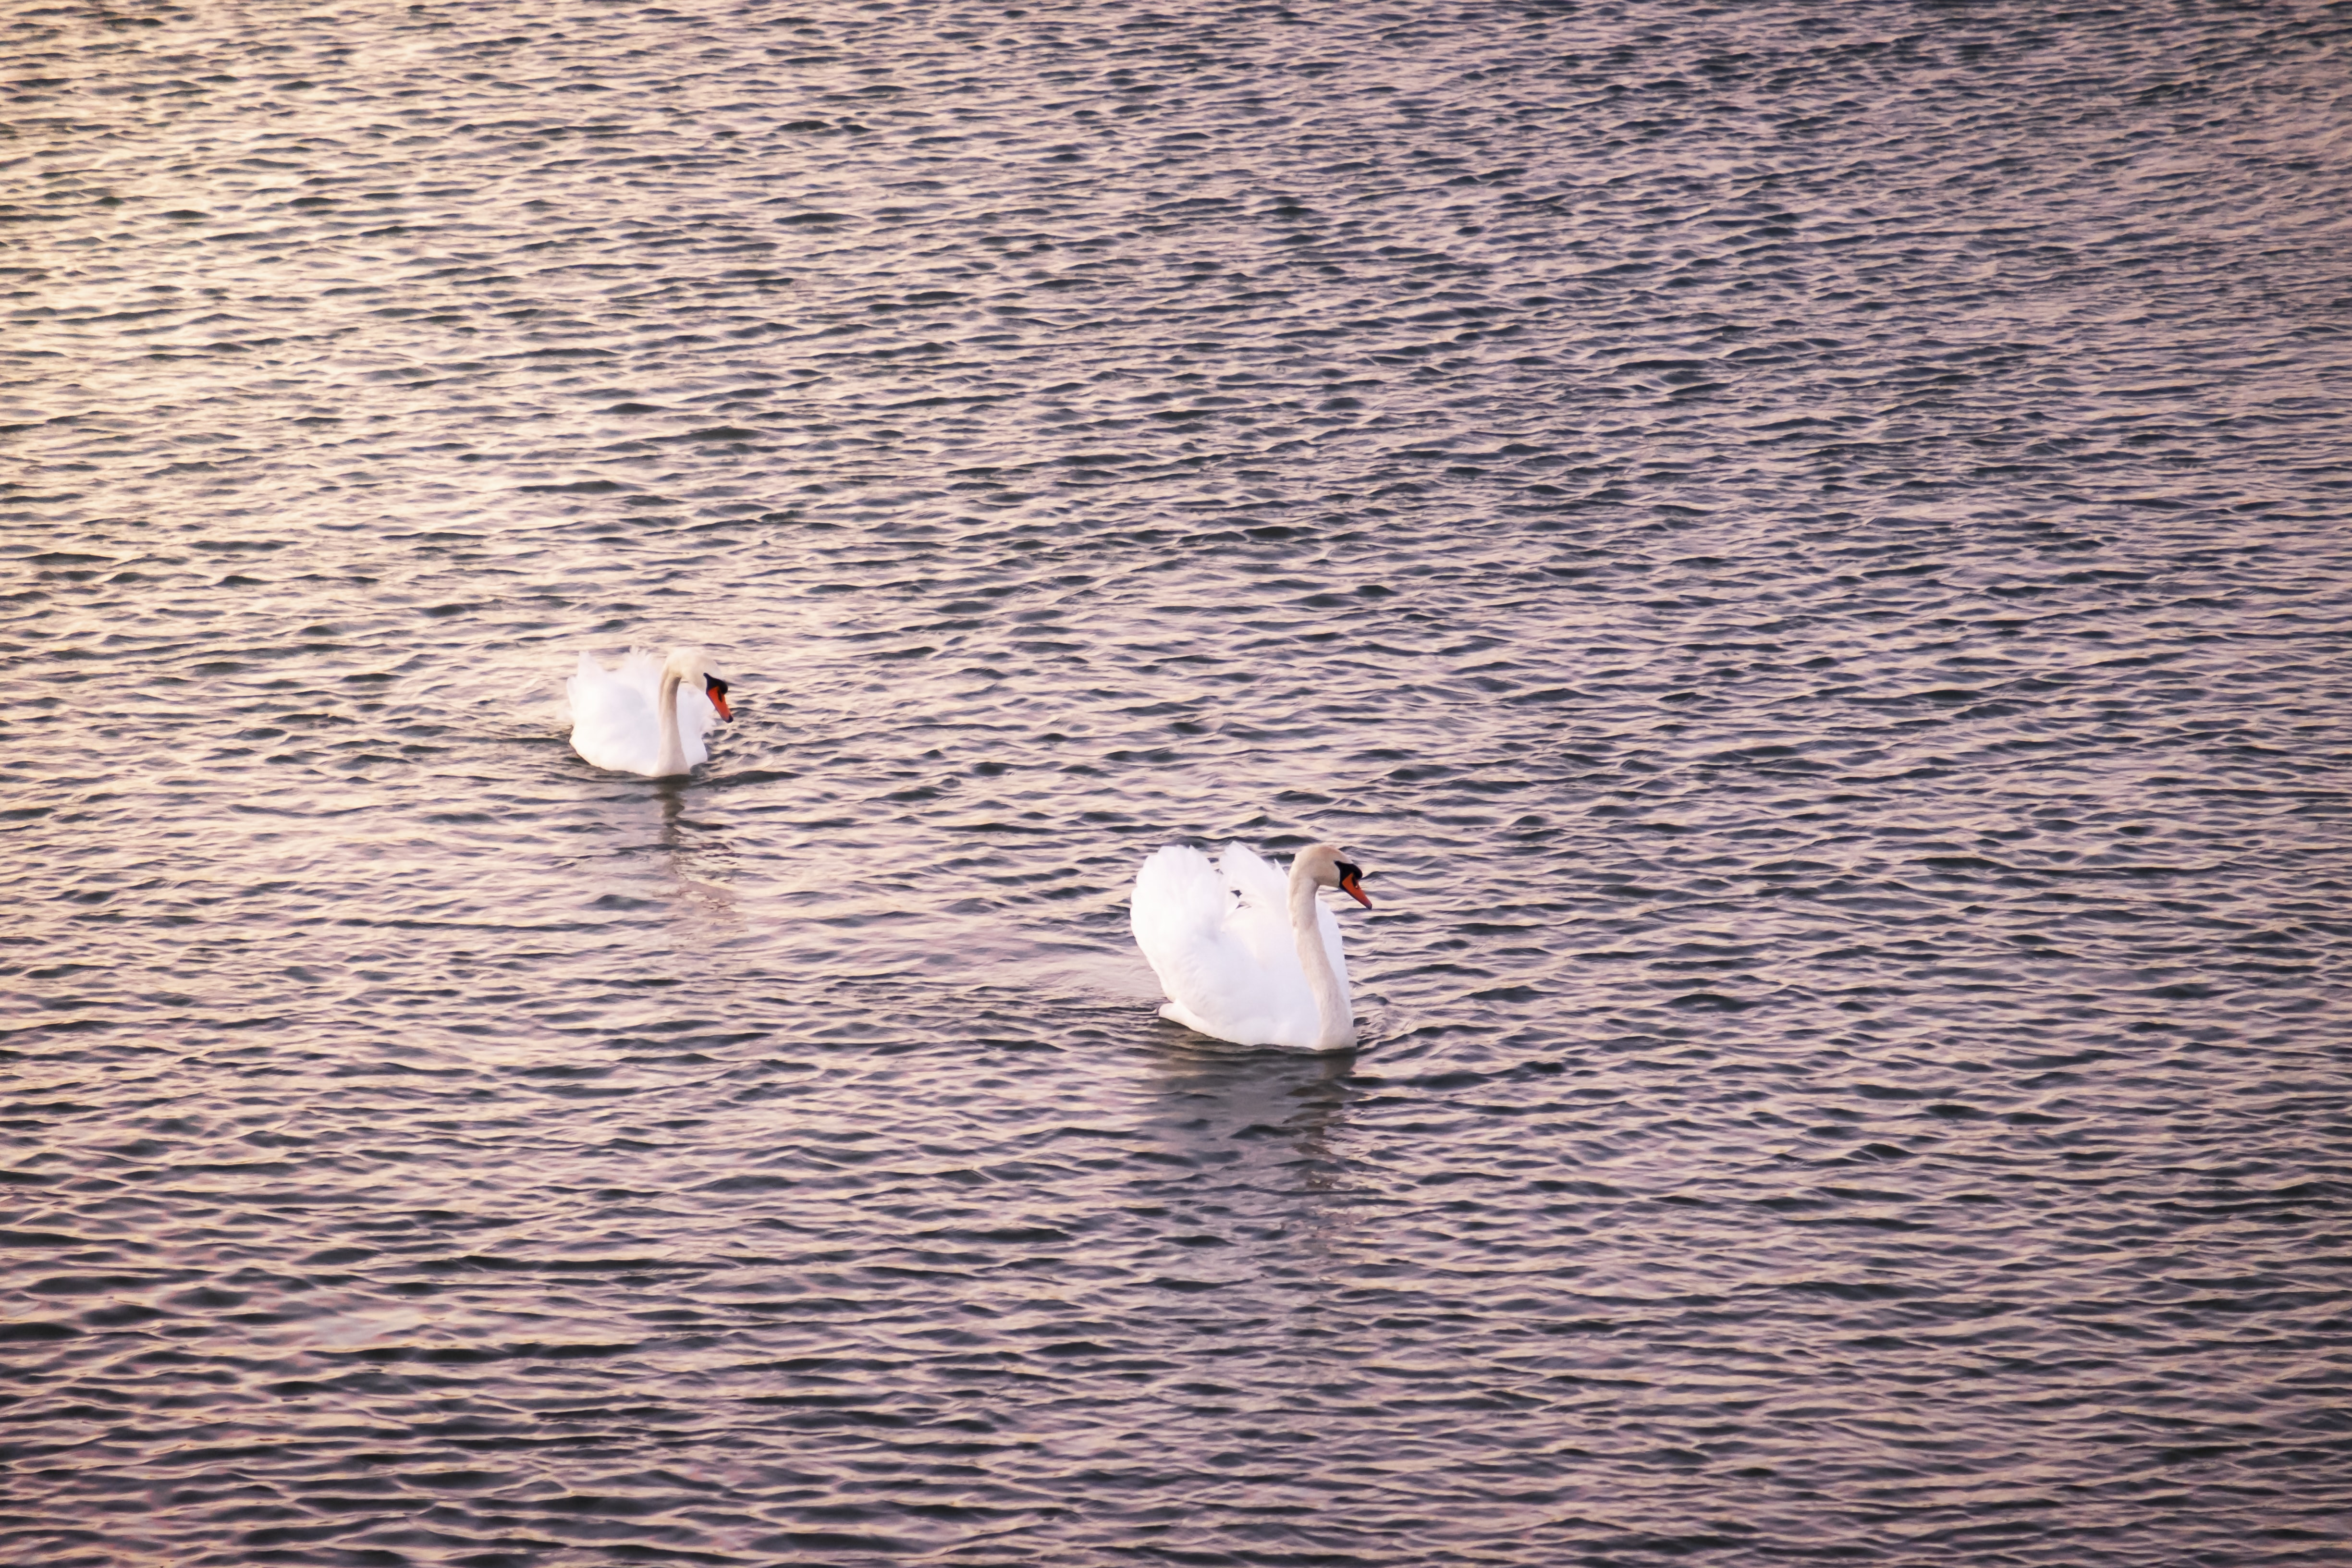 two mute swans crossing water